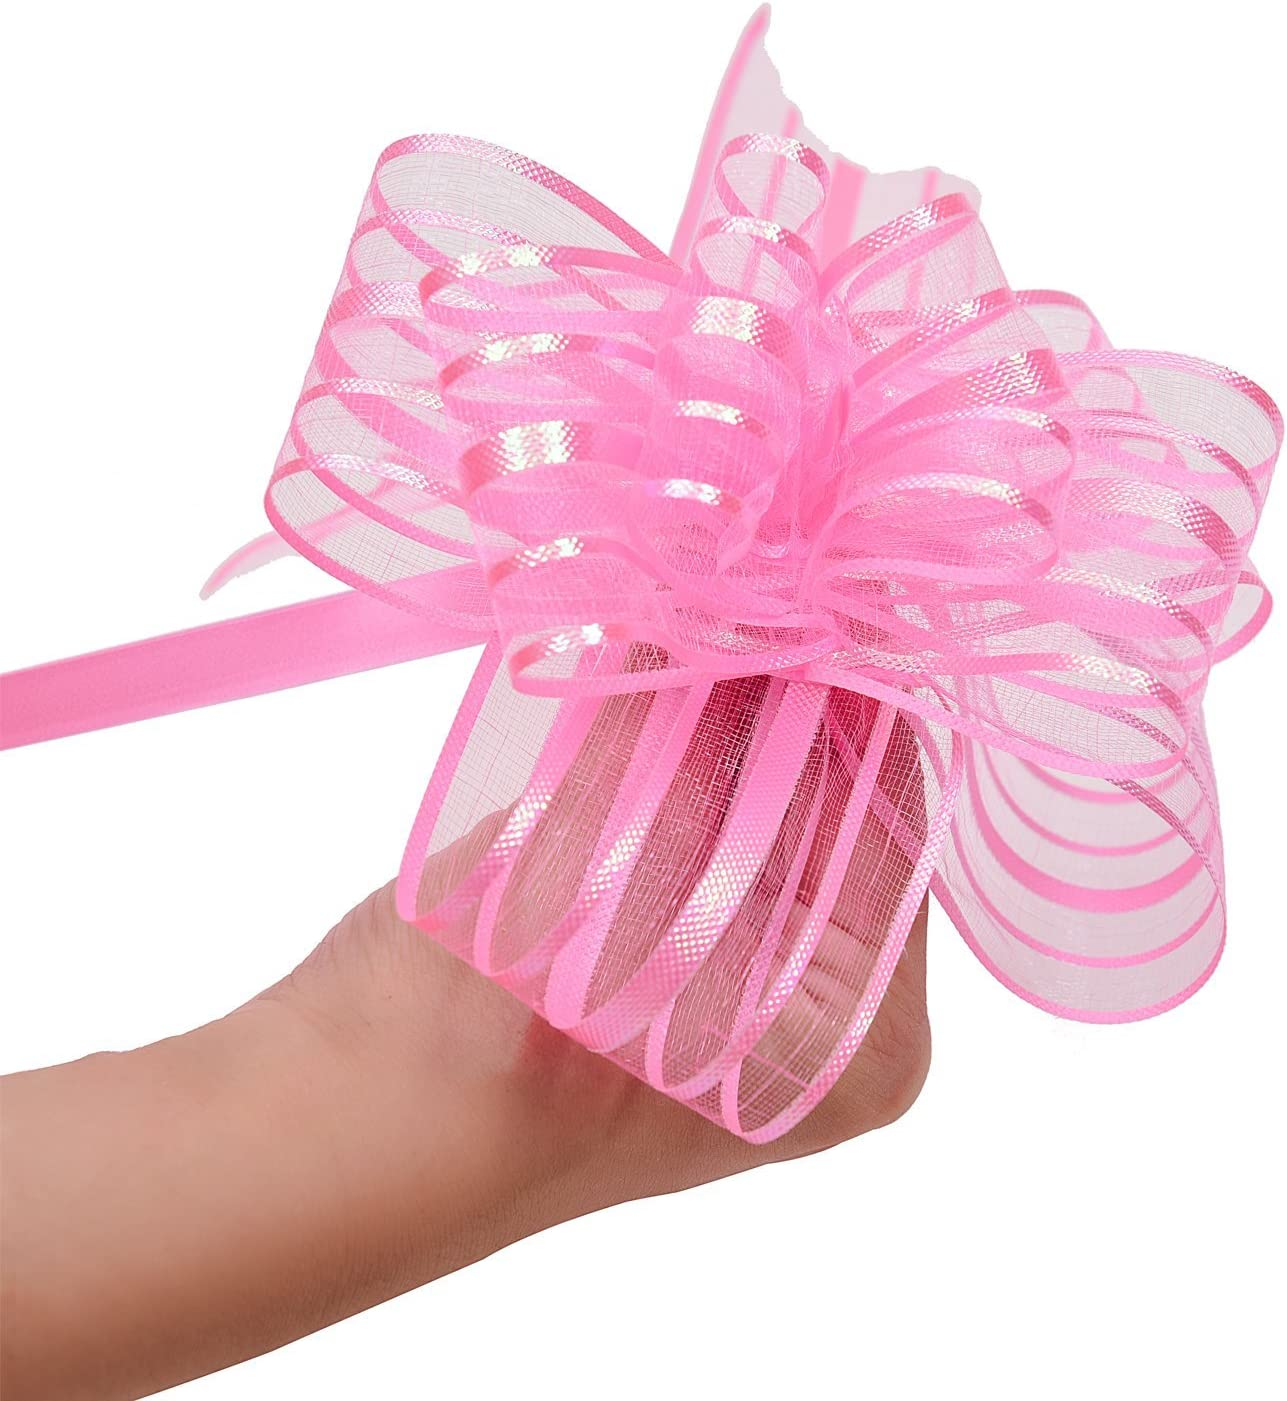 LazyMe Pull Bow, Large, Organza, 6 Inches, for Birthday, Baby Shower, Wedding, Christmas, Holiday Decoration, Party Gift Wrap (Pink, 10)